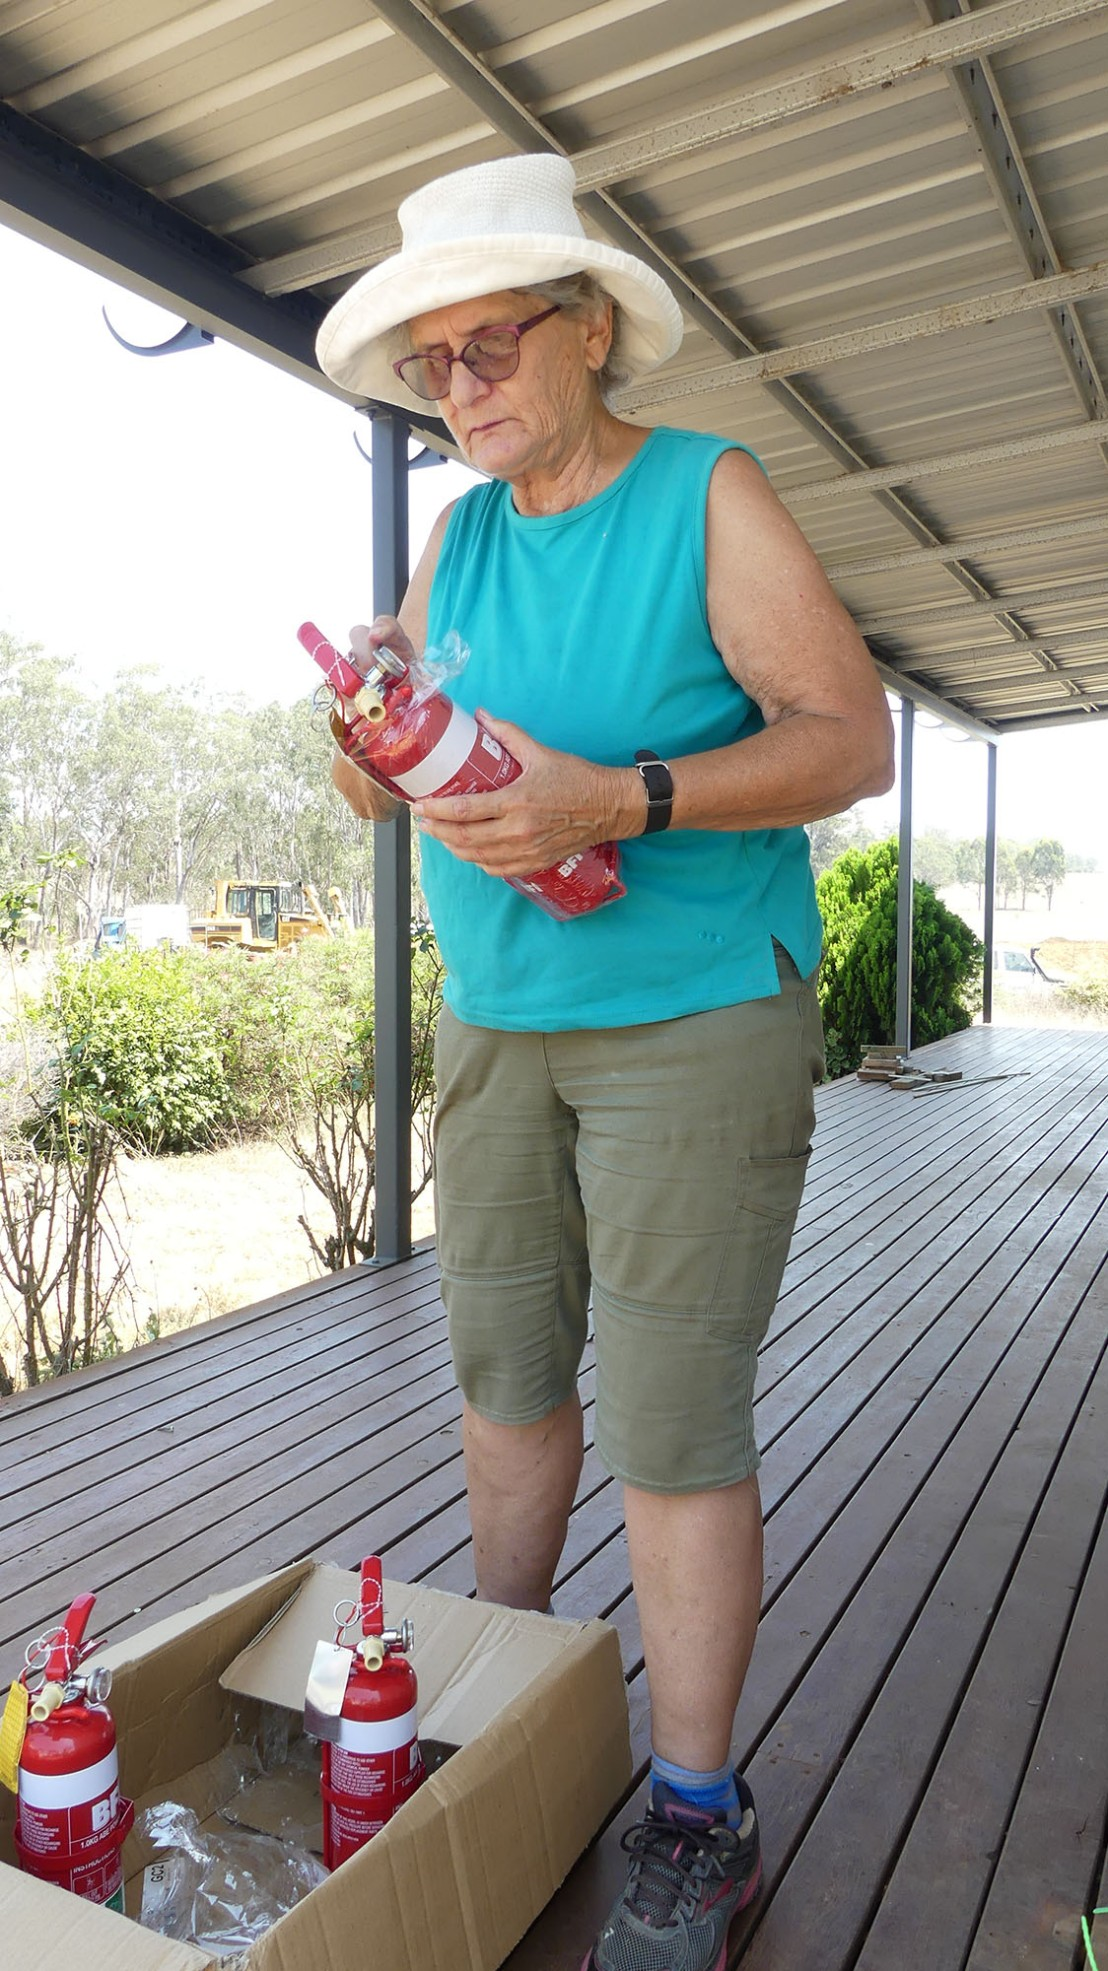 Catherine prepares new fire extinguishers for installation